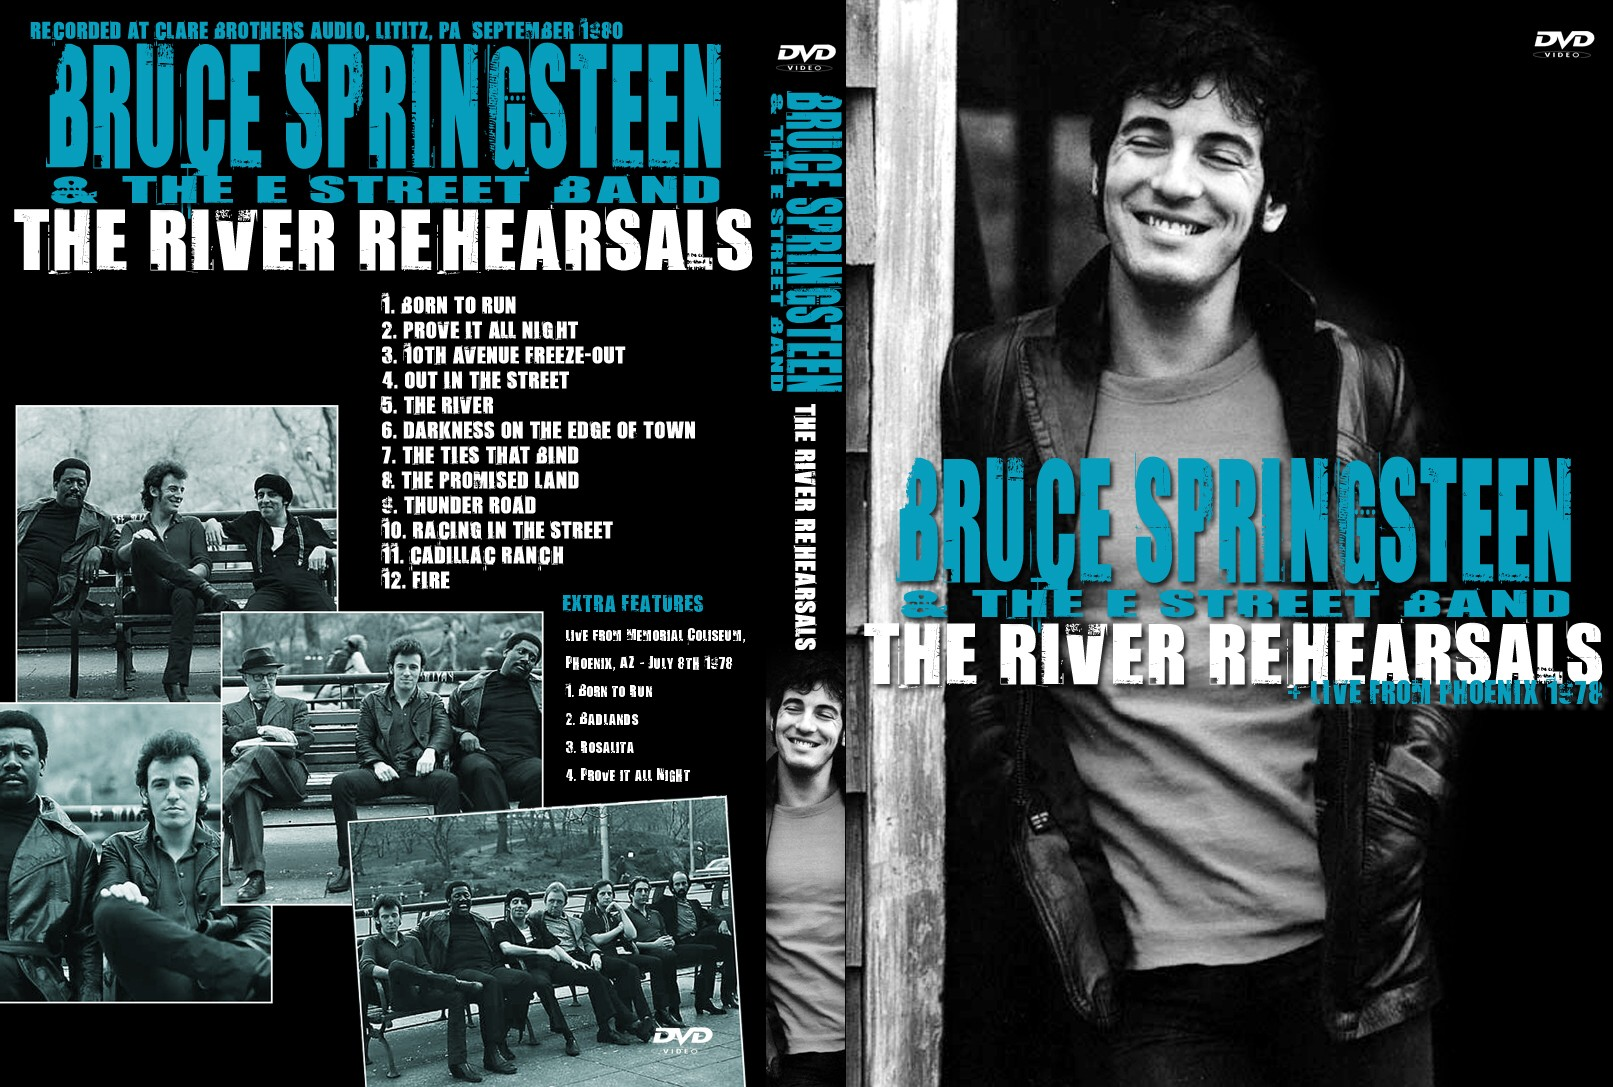 The River Rehearsals 00 Sep 1980 Springsteen Dvds